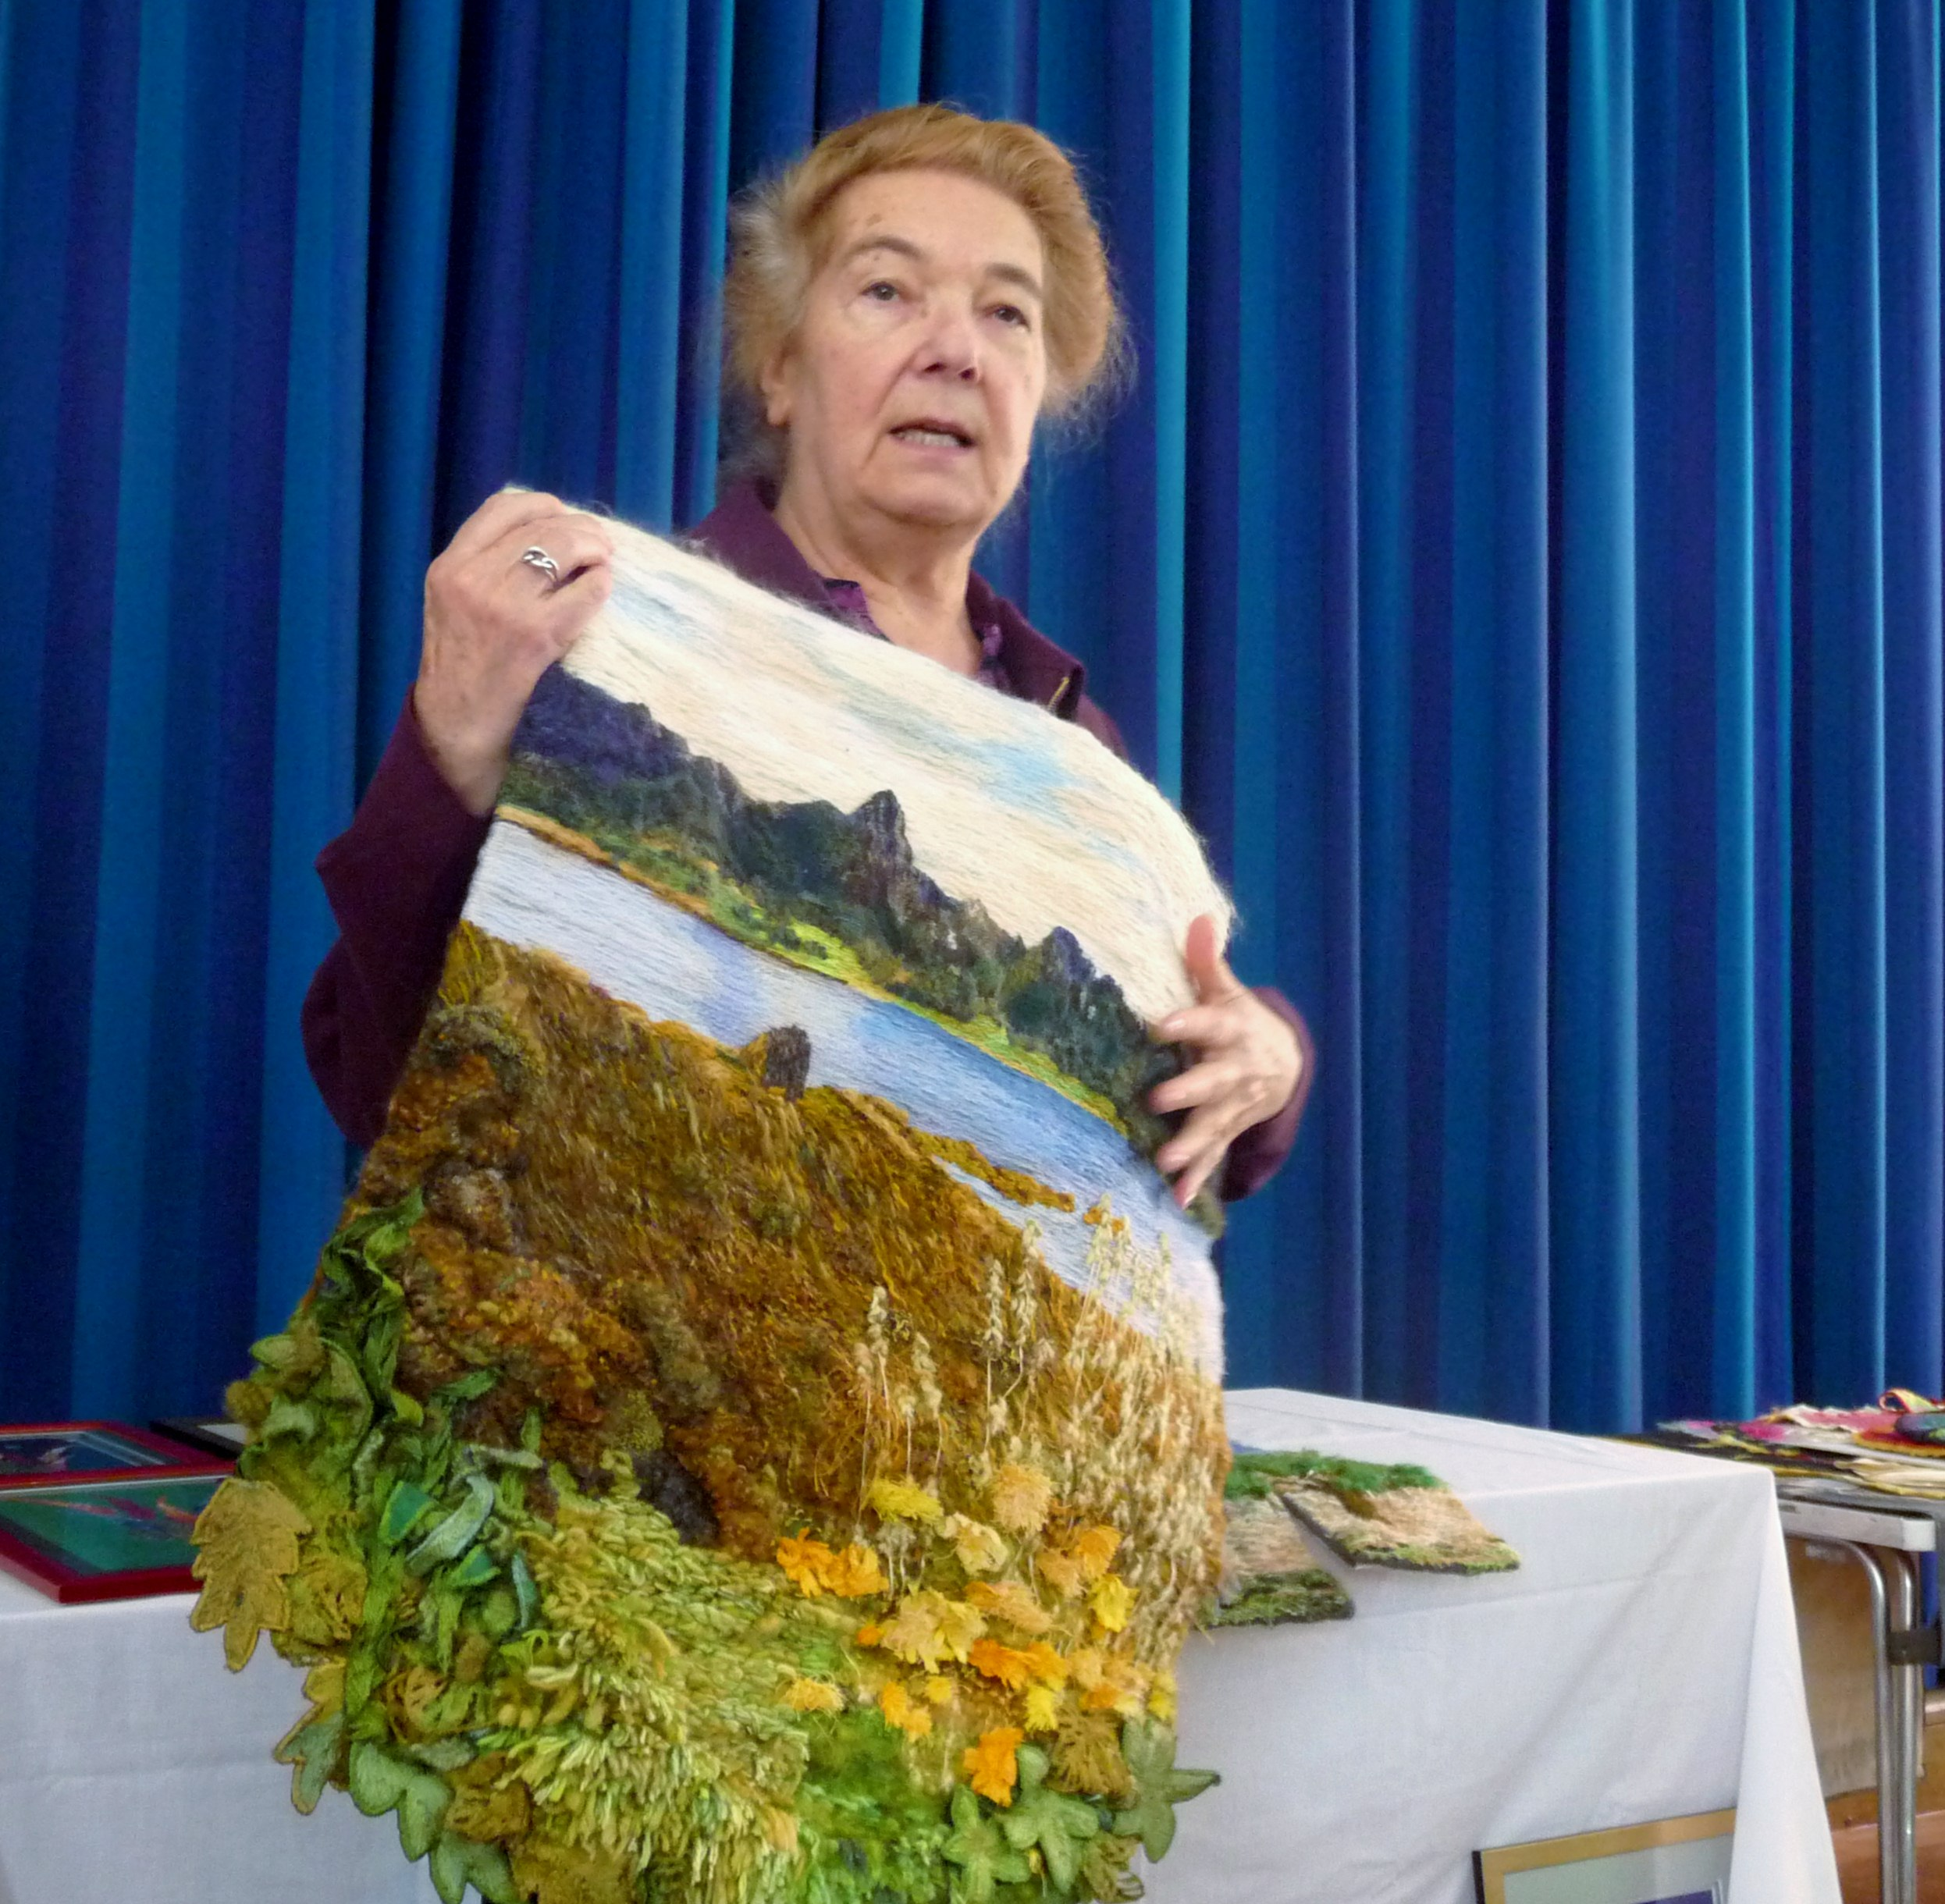 Vicky Williams is telling us about her wool embroidery at Altrincham EG